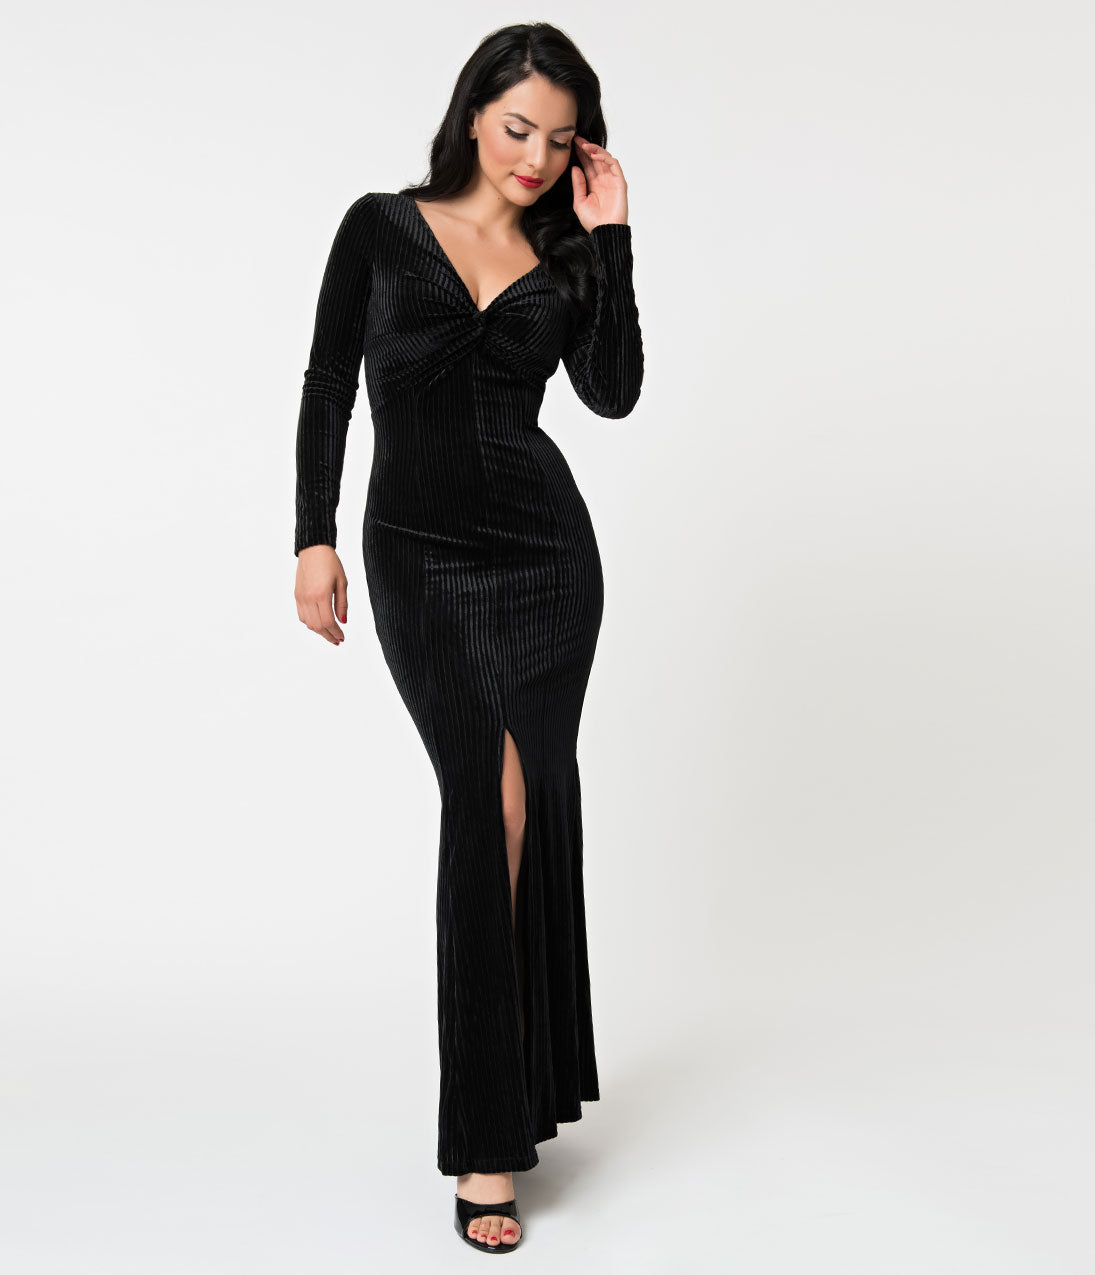 1930s Evening Dresses | Old Hollywood Dress Voodoo Vixen 1930S Style Black Ribbed Velvet Morticia Gown $92.00 AT vintagedancer.com